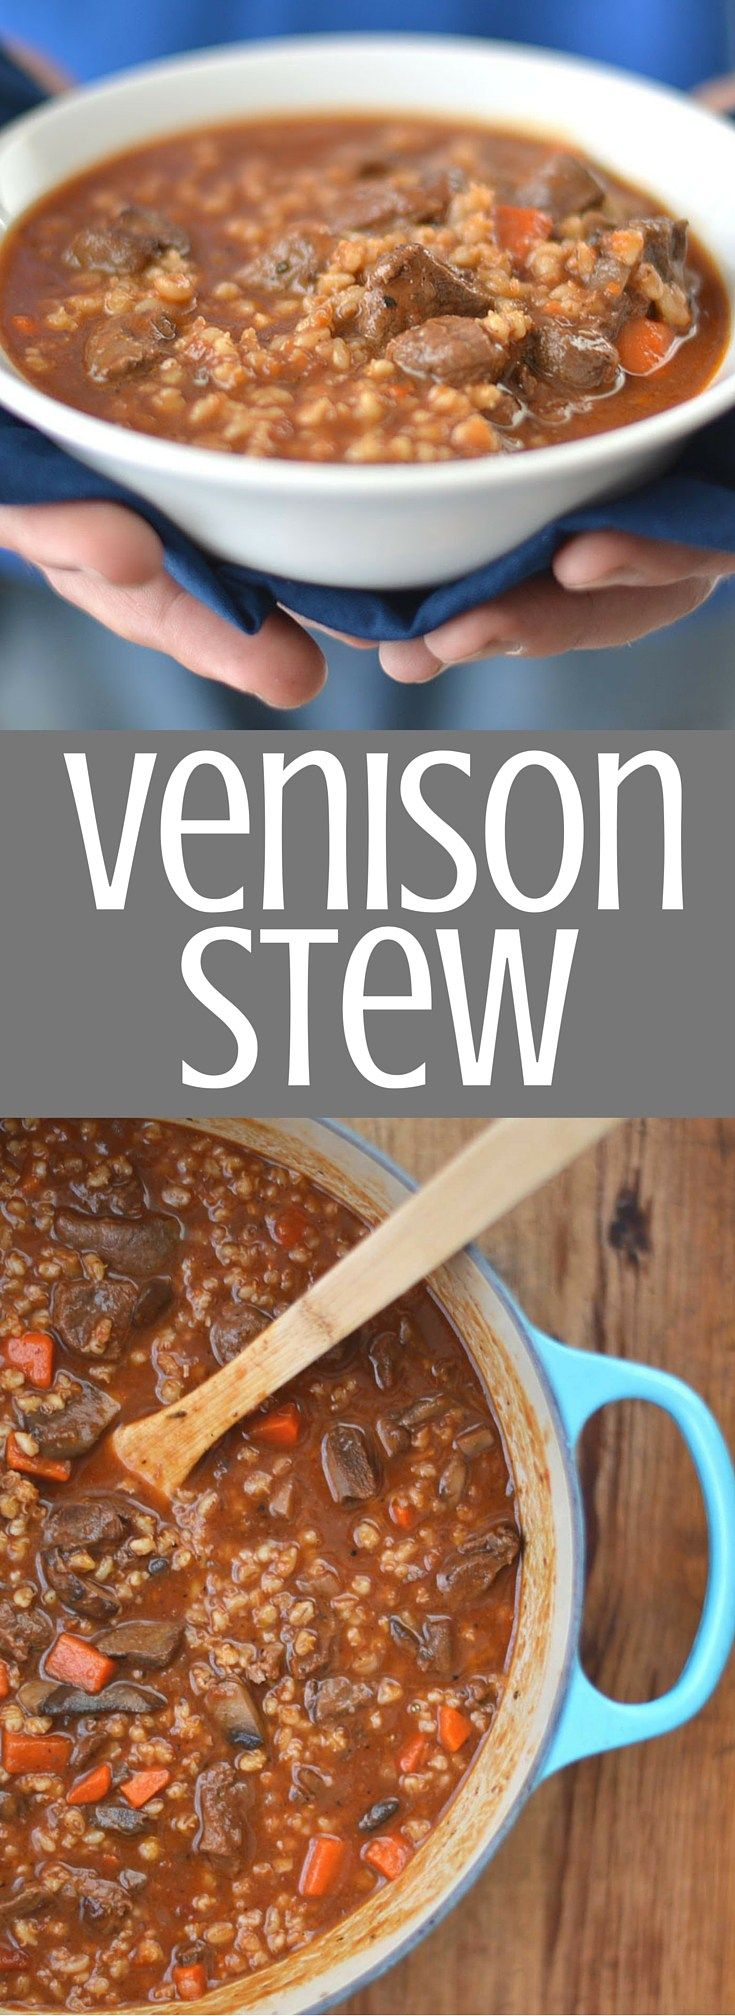 Venison Stew | Chunks of fresh venison simmer for hours with barley, carrots, mushrooms, wine, and beef stock to create this comforting and hearty venison stew. This is cold weather comfort food at it's best! Clickthrough for the full recipe and pin for later.